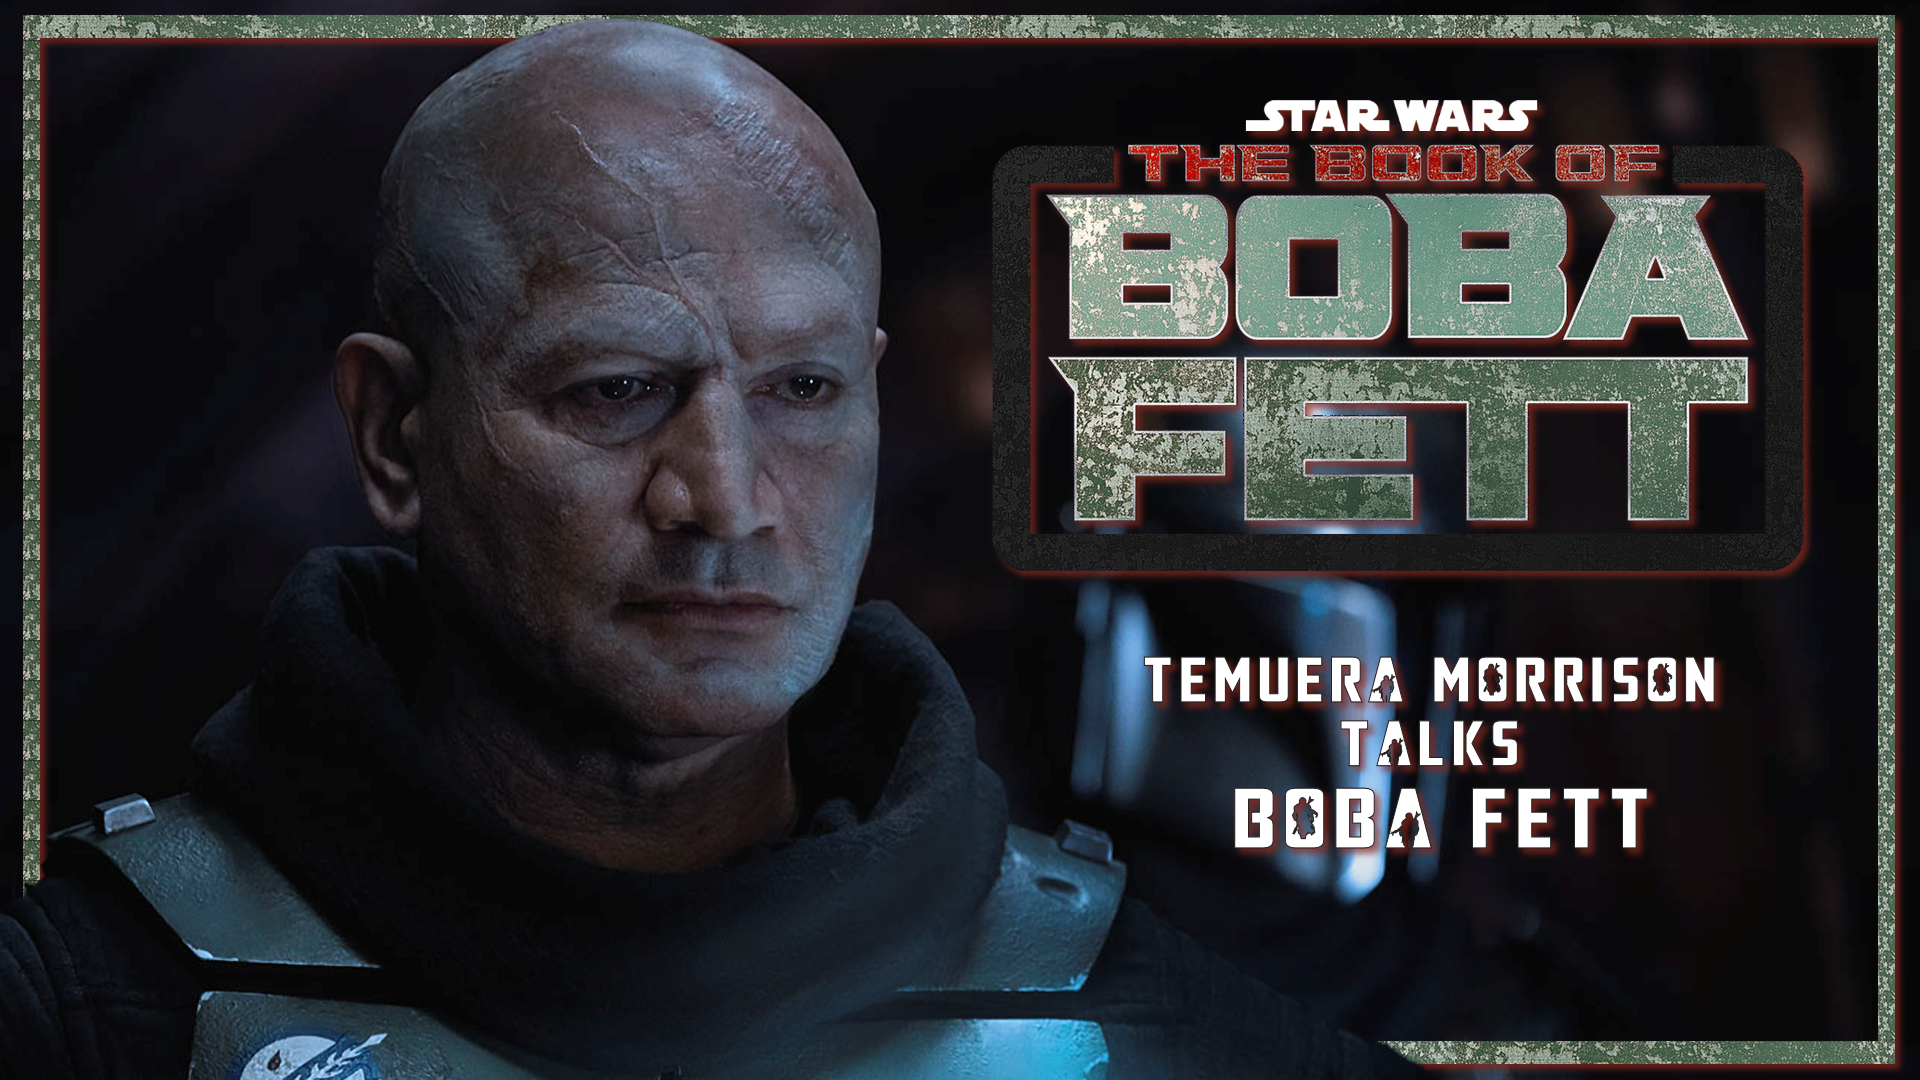 Temuera Morrison Opens Up About 'The Book Of Boba Fett'